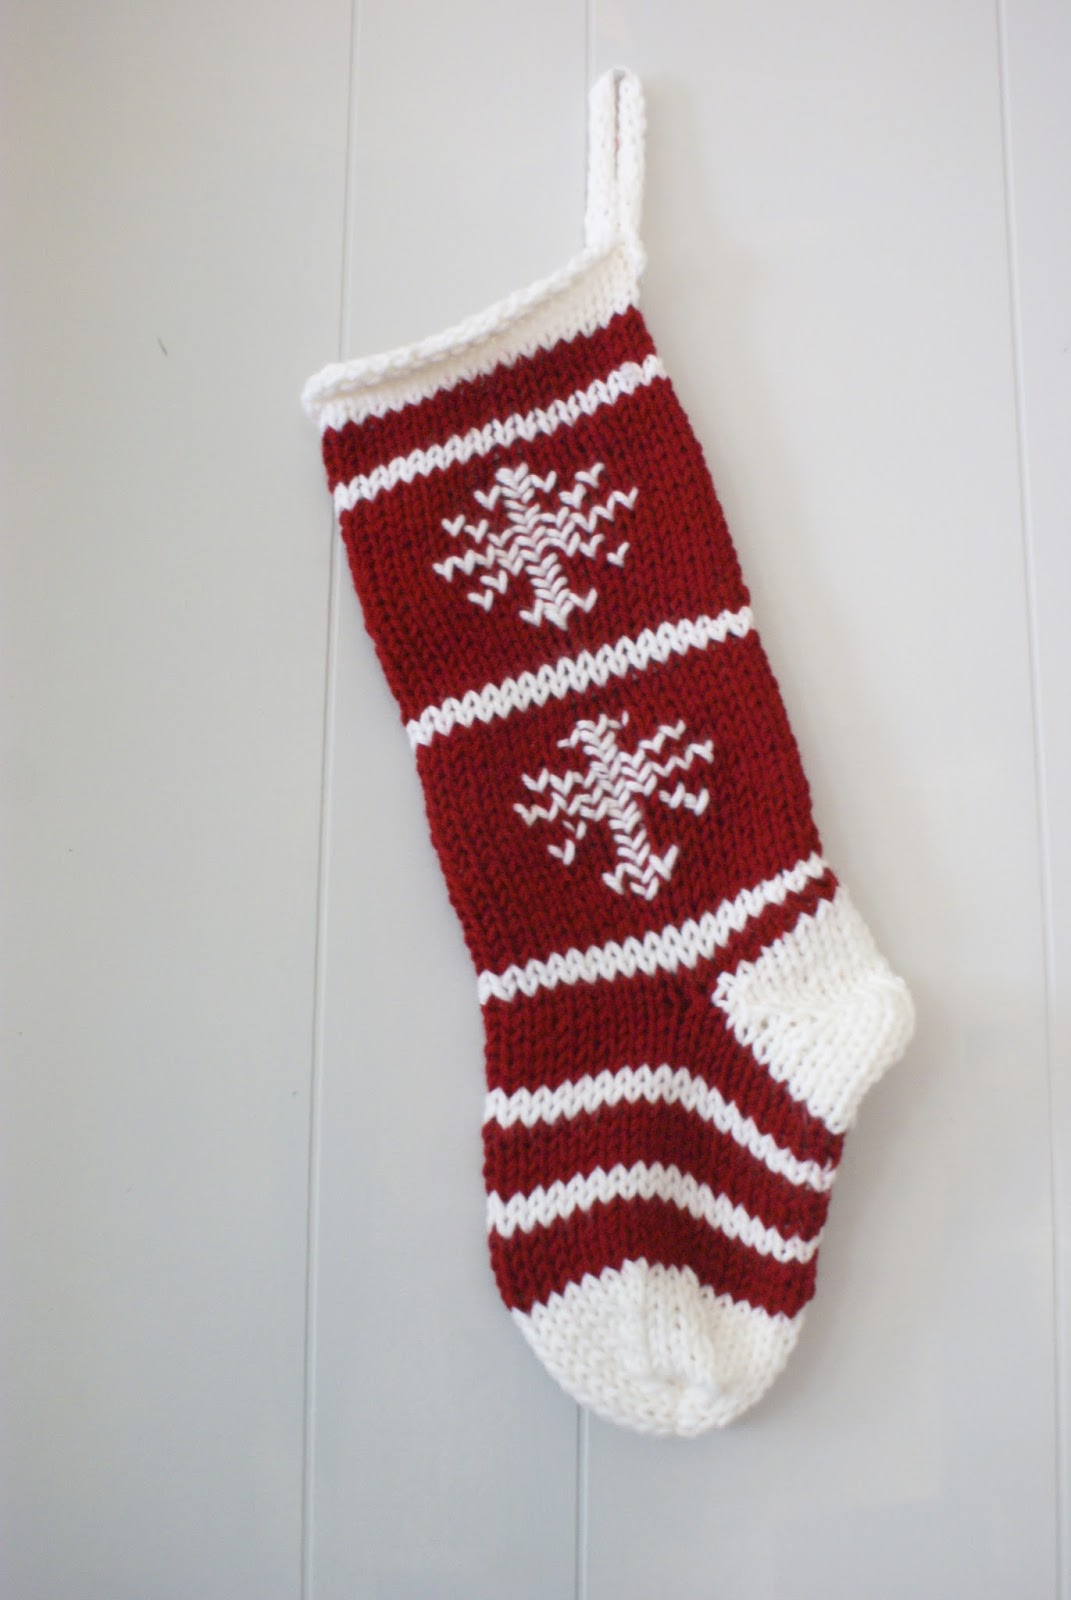 PreciousKnitsShop Blog: Classic Red & White Knit Christmas Stocking with ...